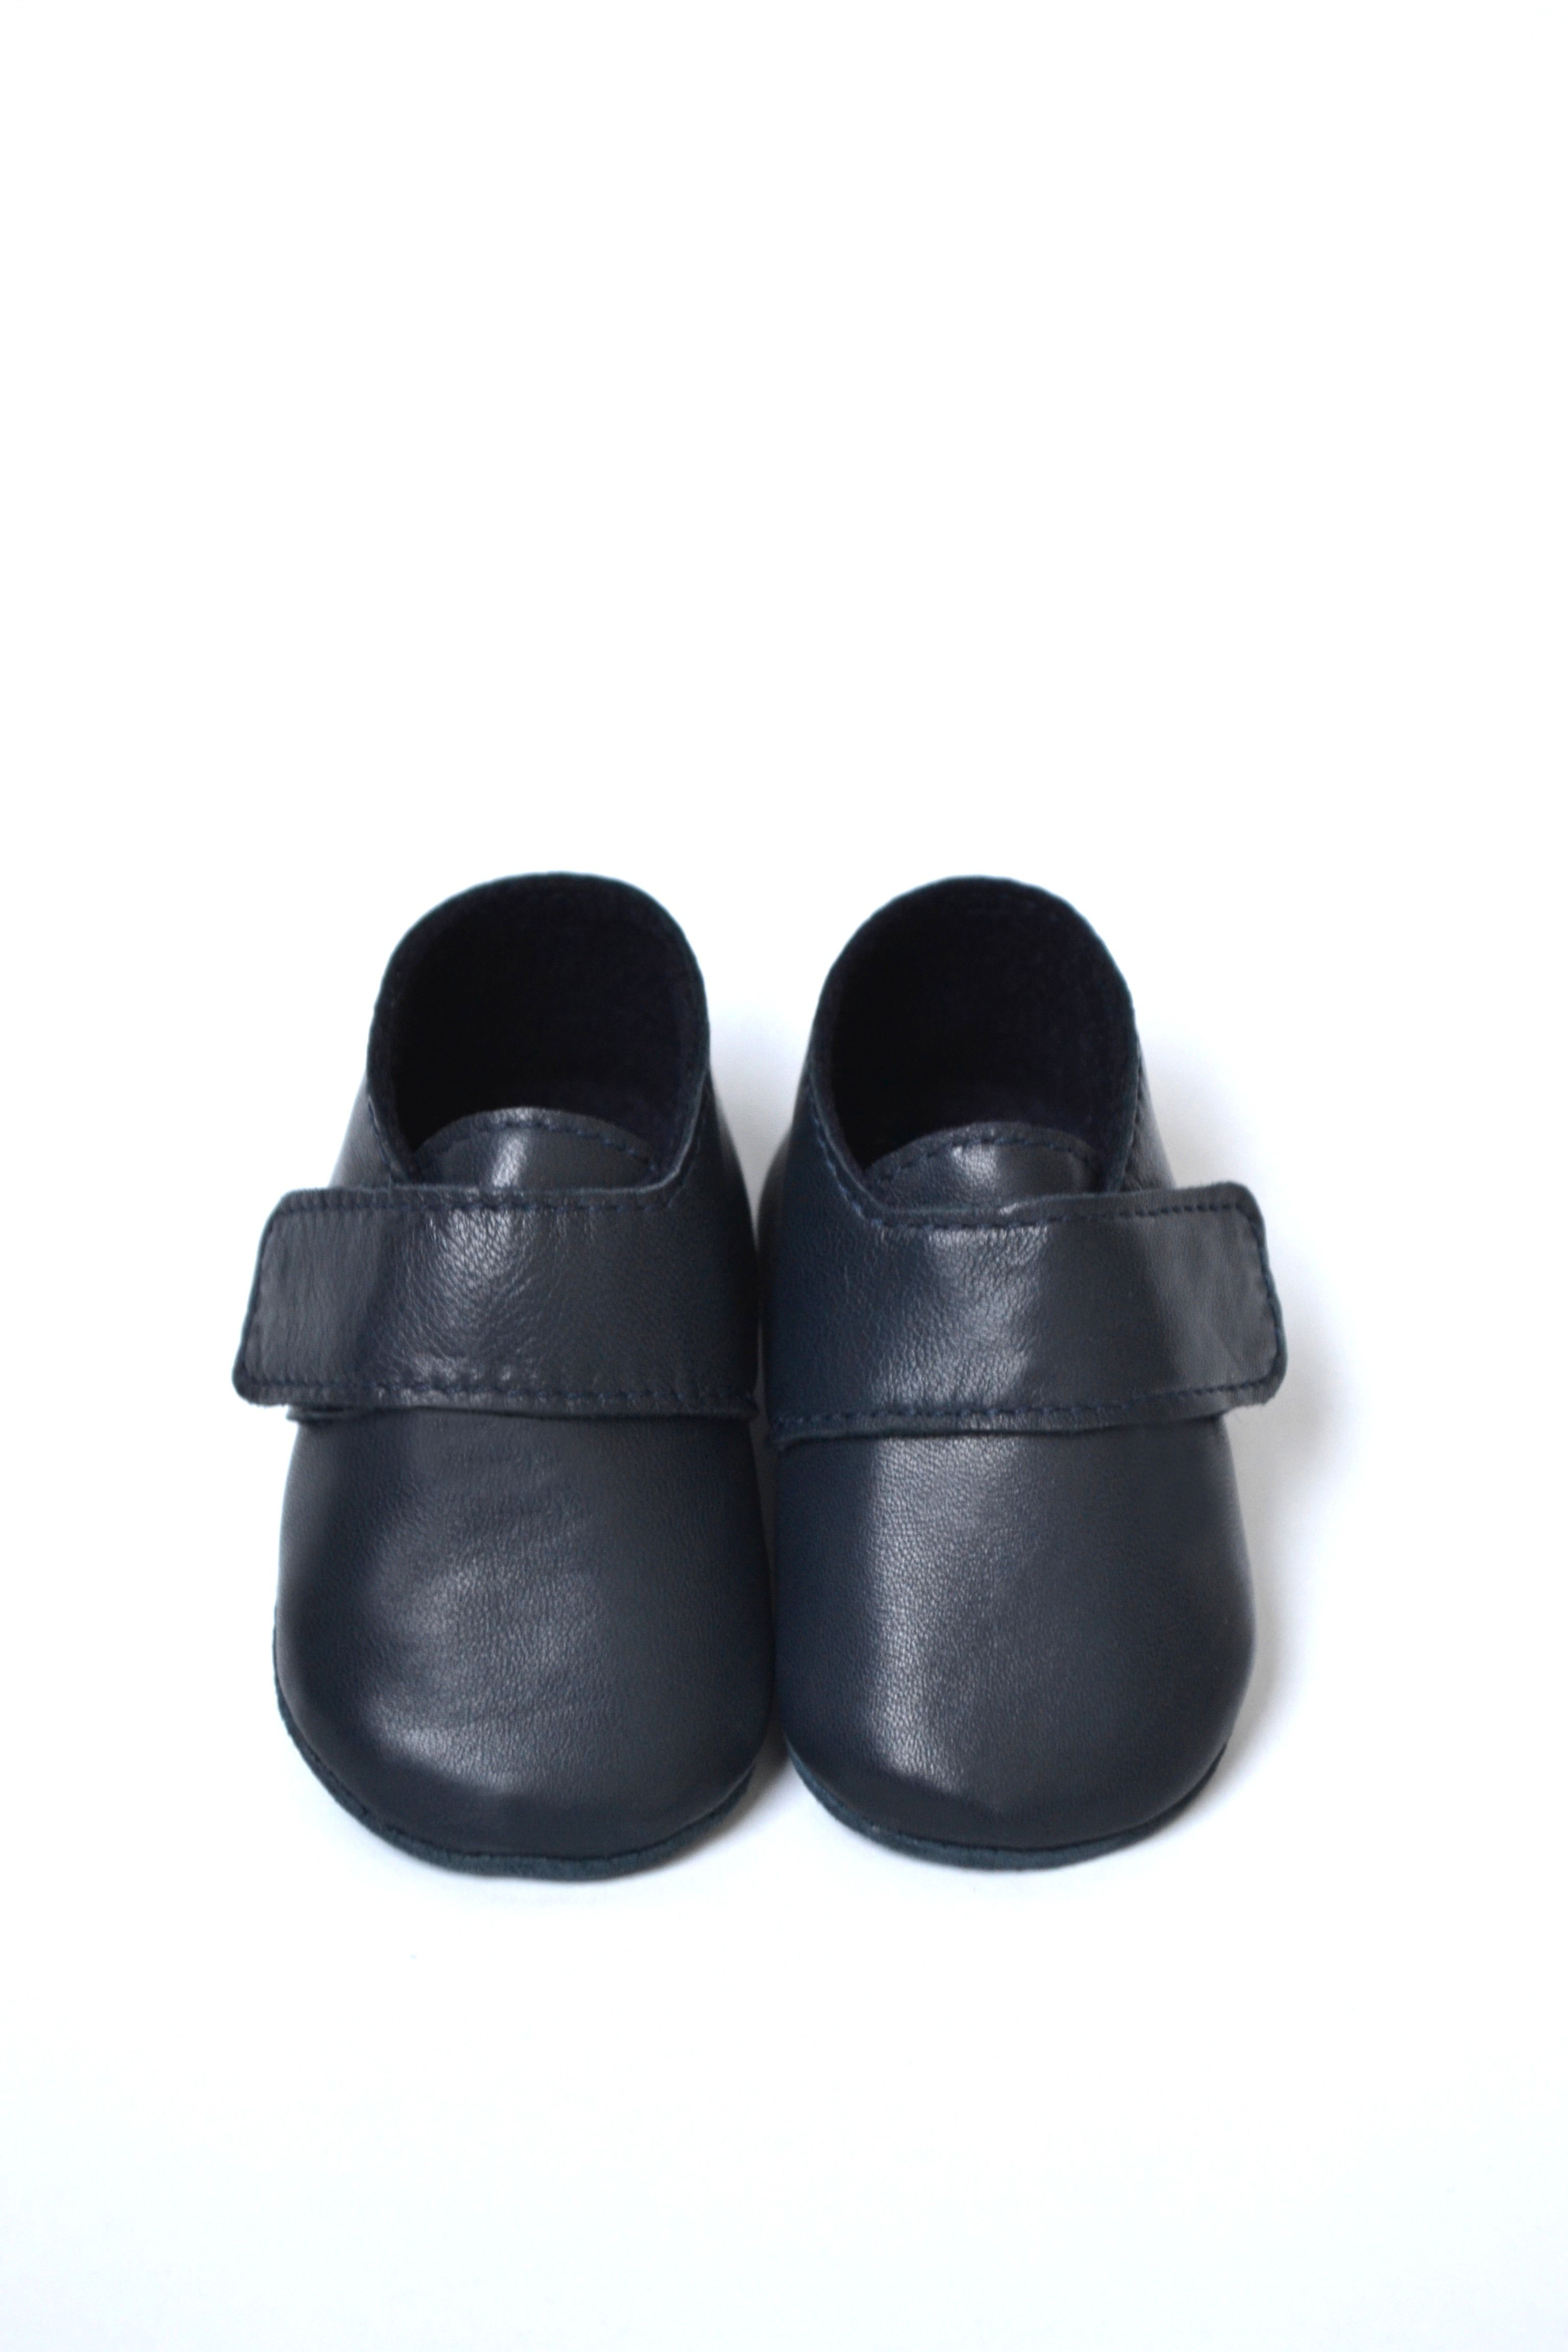 Handmade soft sole leather baby boy booties Navy baby boy shoes